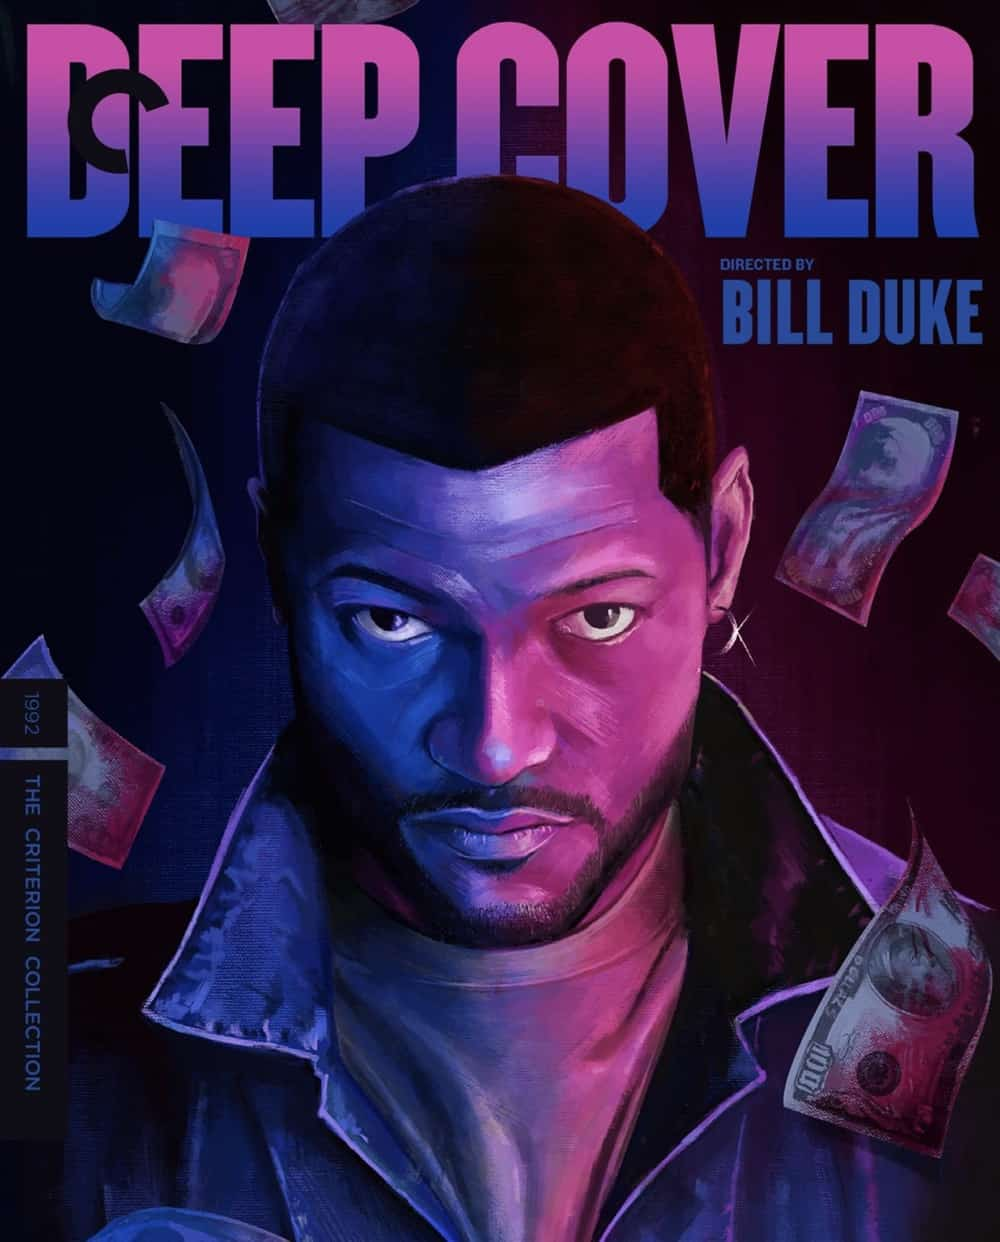 Deep Cover Criterion Bluray Cover